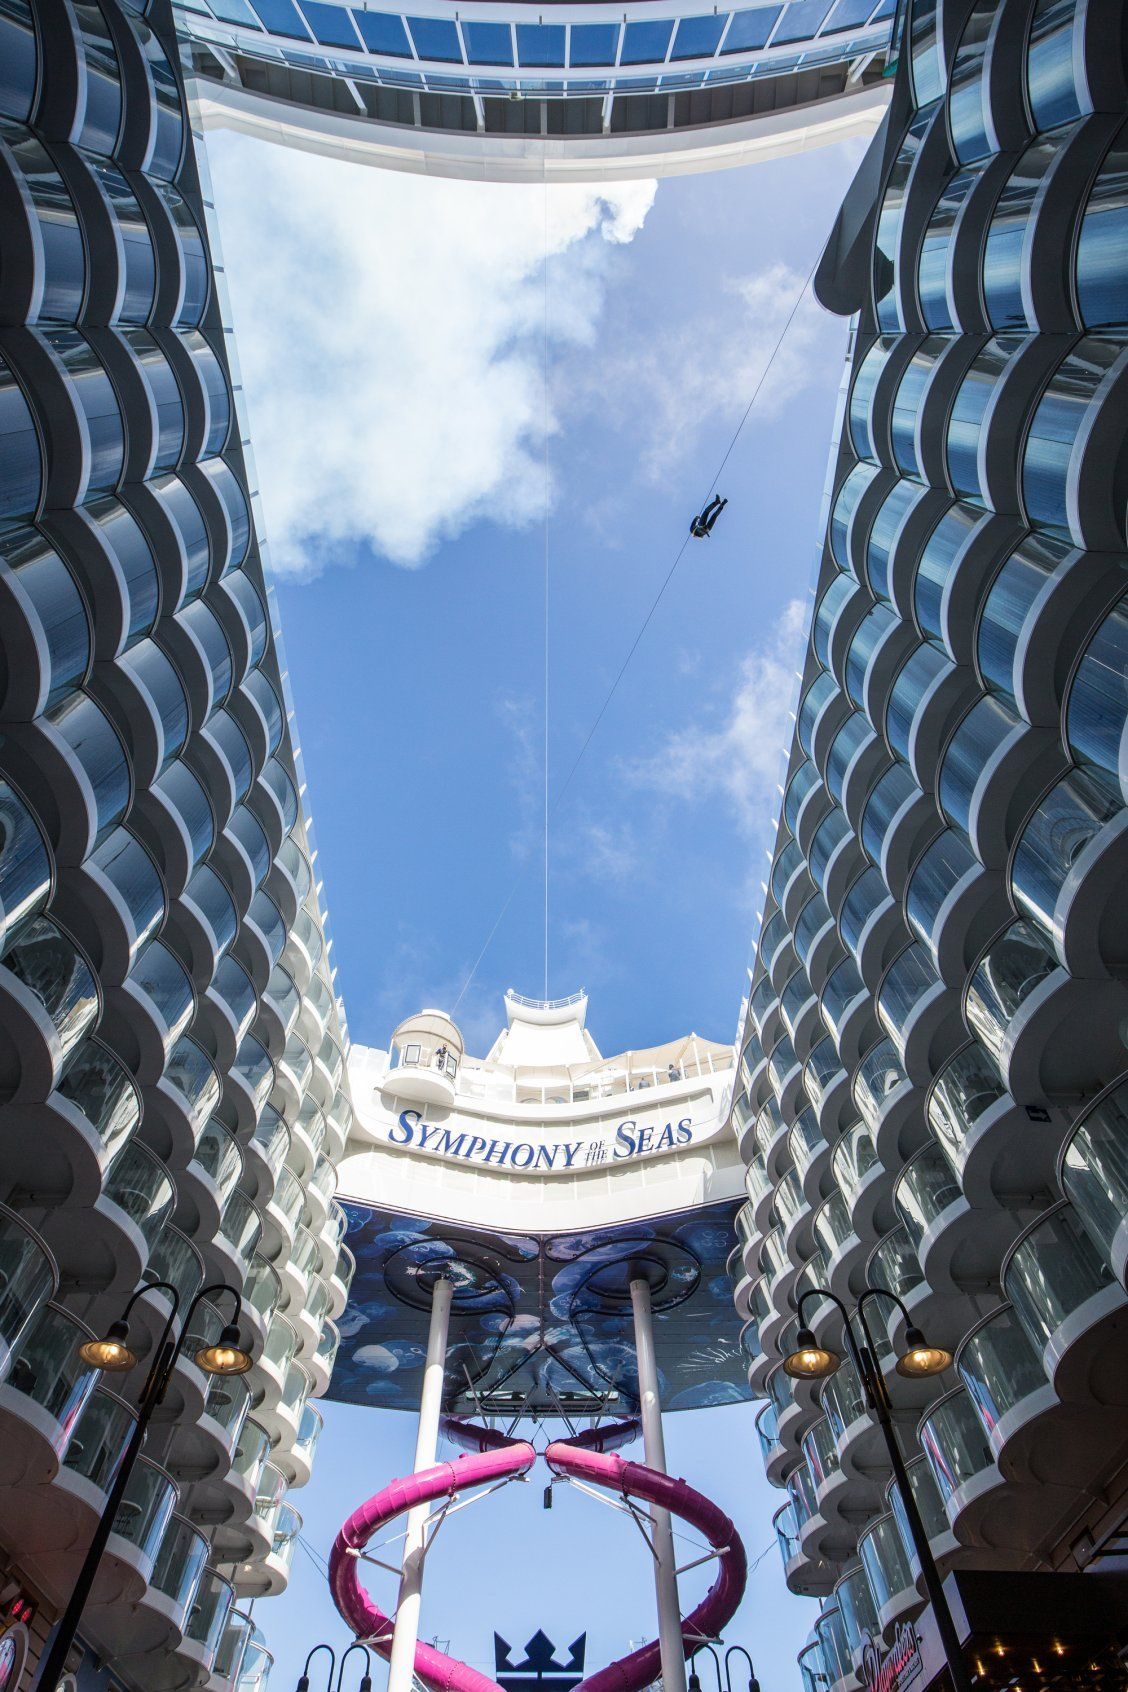 Symphony of the Seas   Let the sun in. And the adventure. Experience a whole new level of thrills and onboard experiences including the Ultimate Family Suite for a family vacation that is certain to have no parallel.